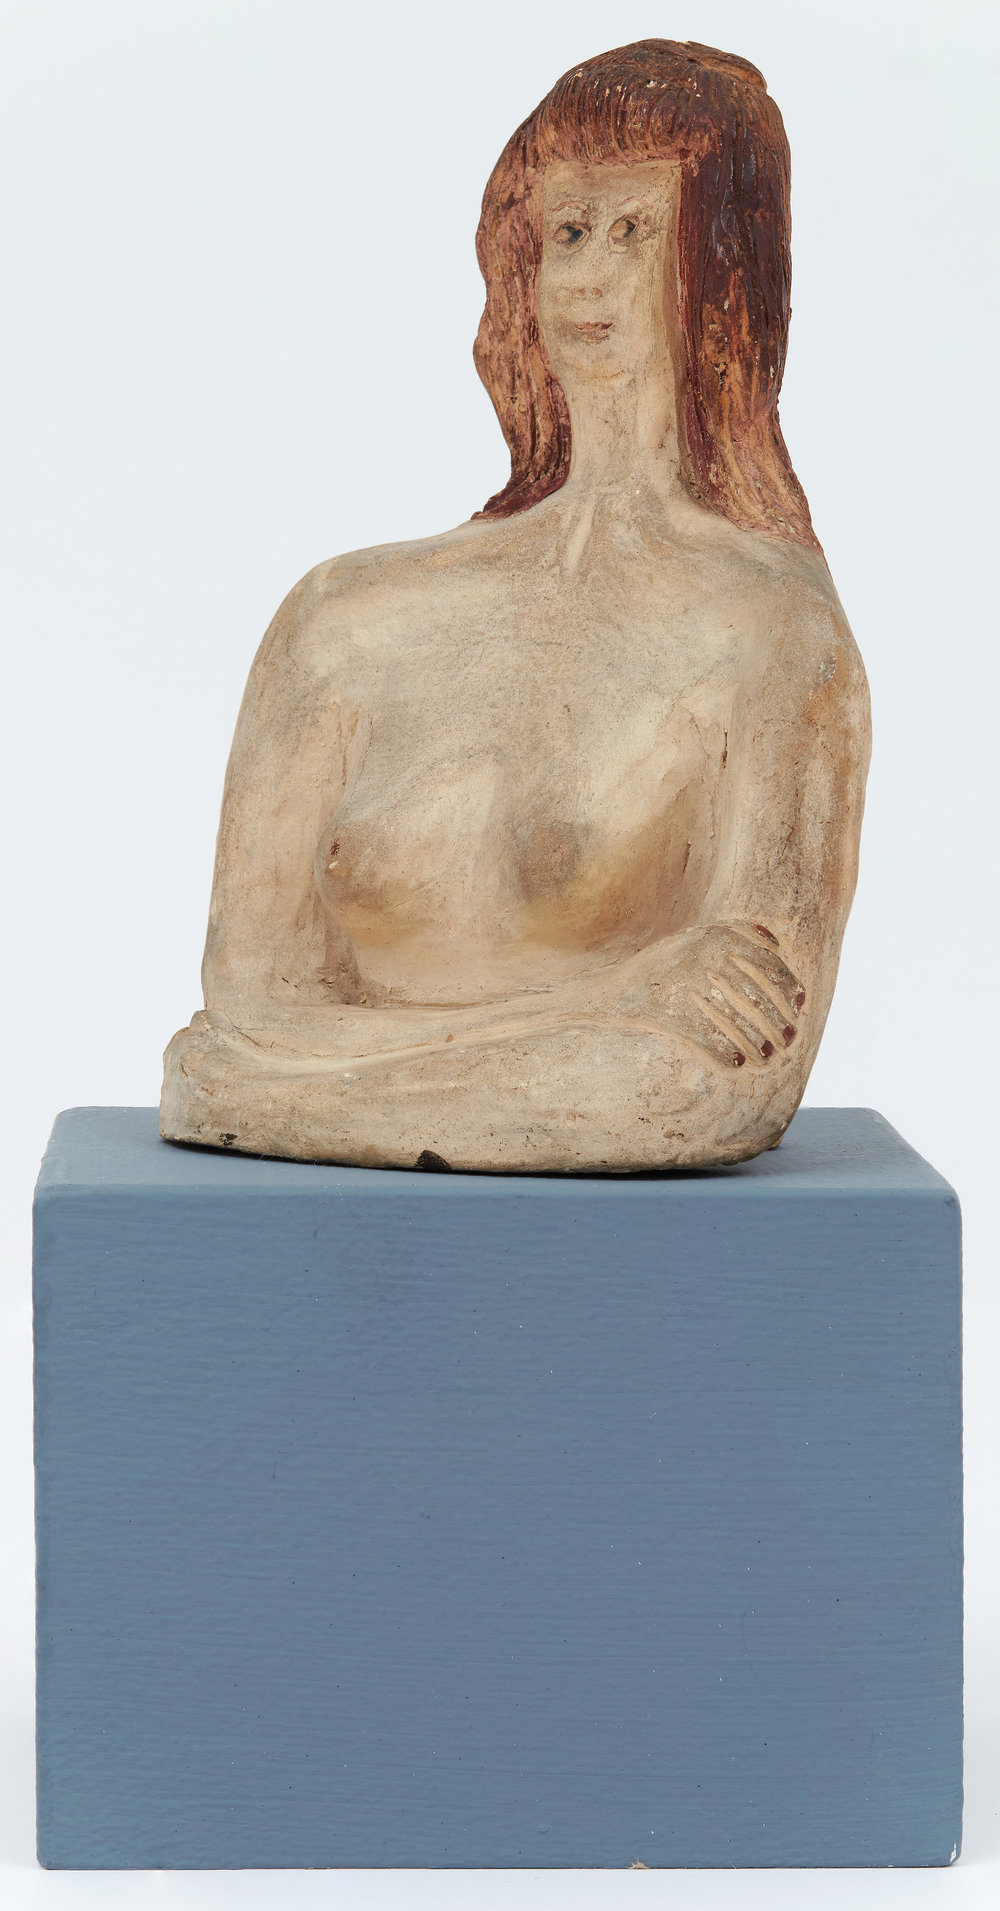 Self Portrait,  c. 1945, Unglazed clay and paint, 5 1/2 × 3 1/2 × 3 inches. Illinois State Museum, Illinois Legacy Collection, Gift of the Gertrude Abercrombie Trust.